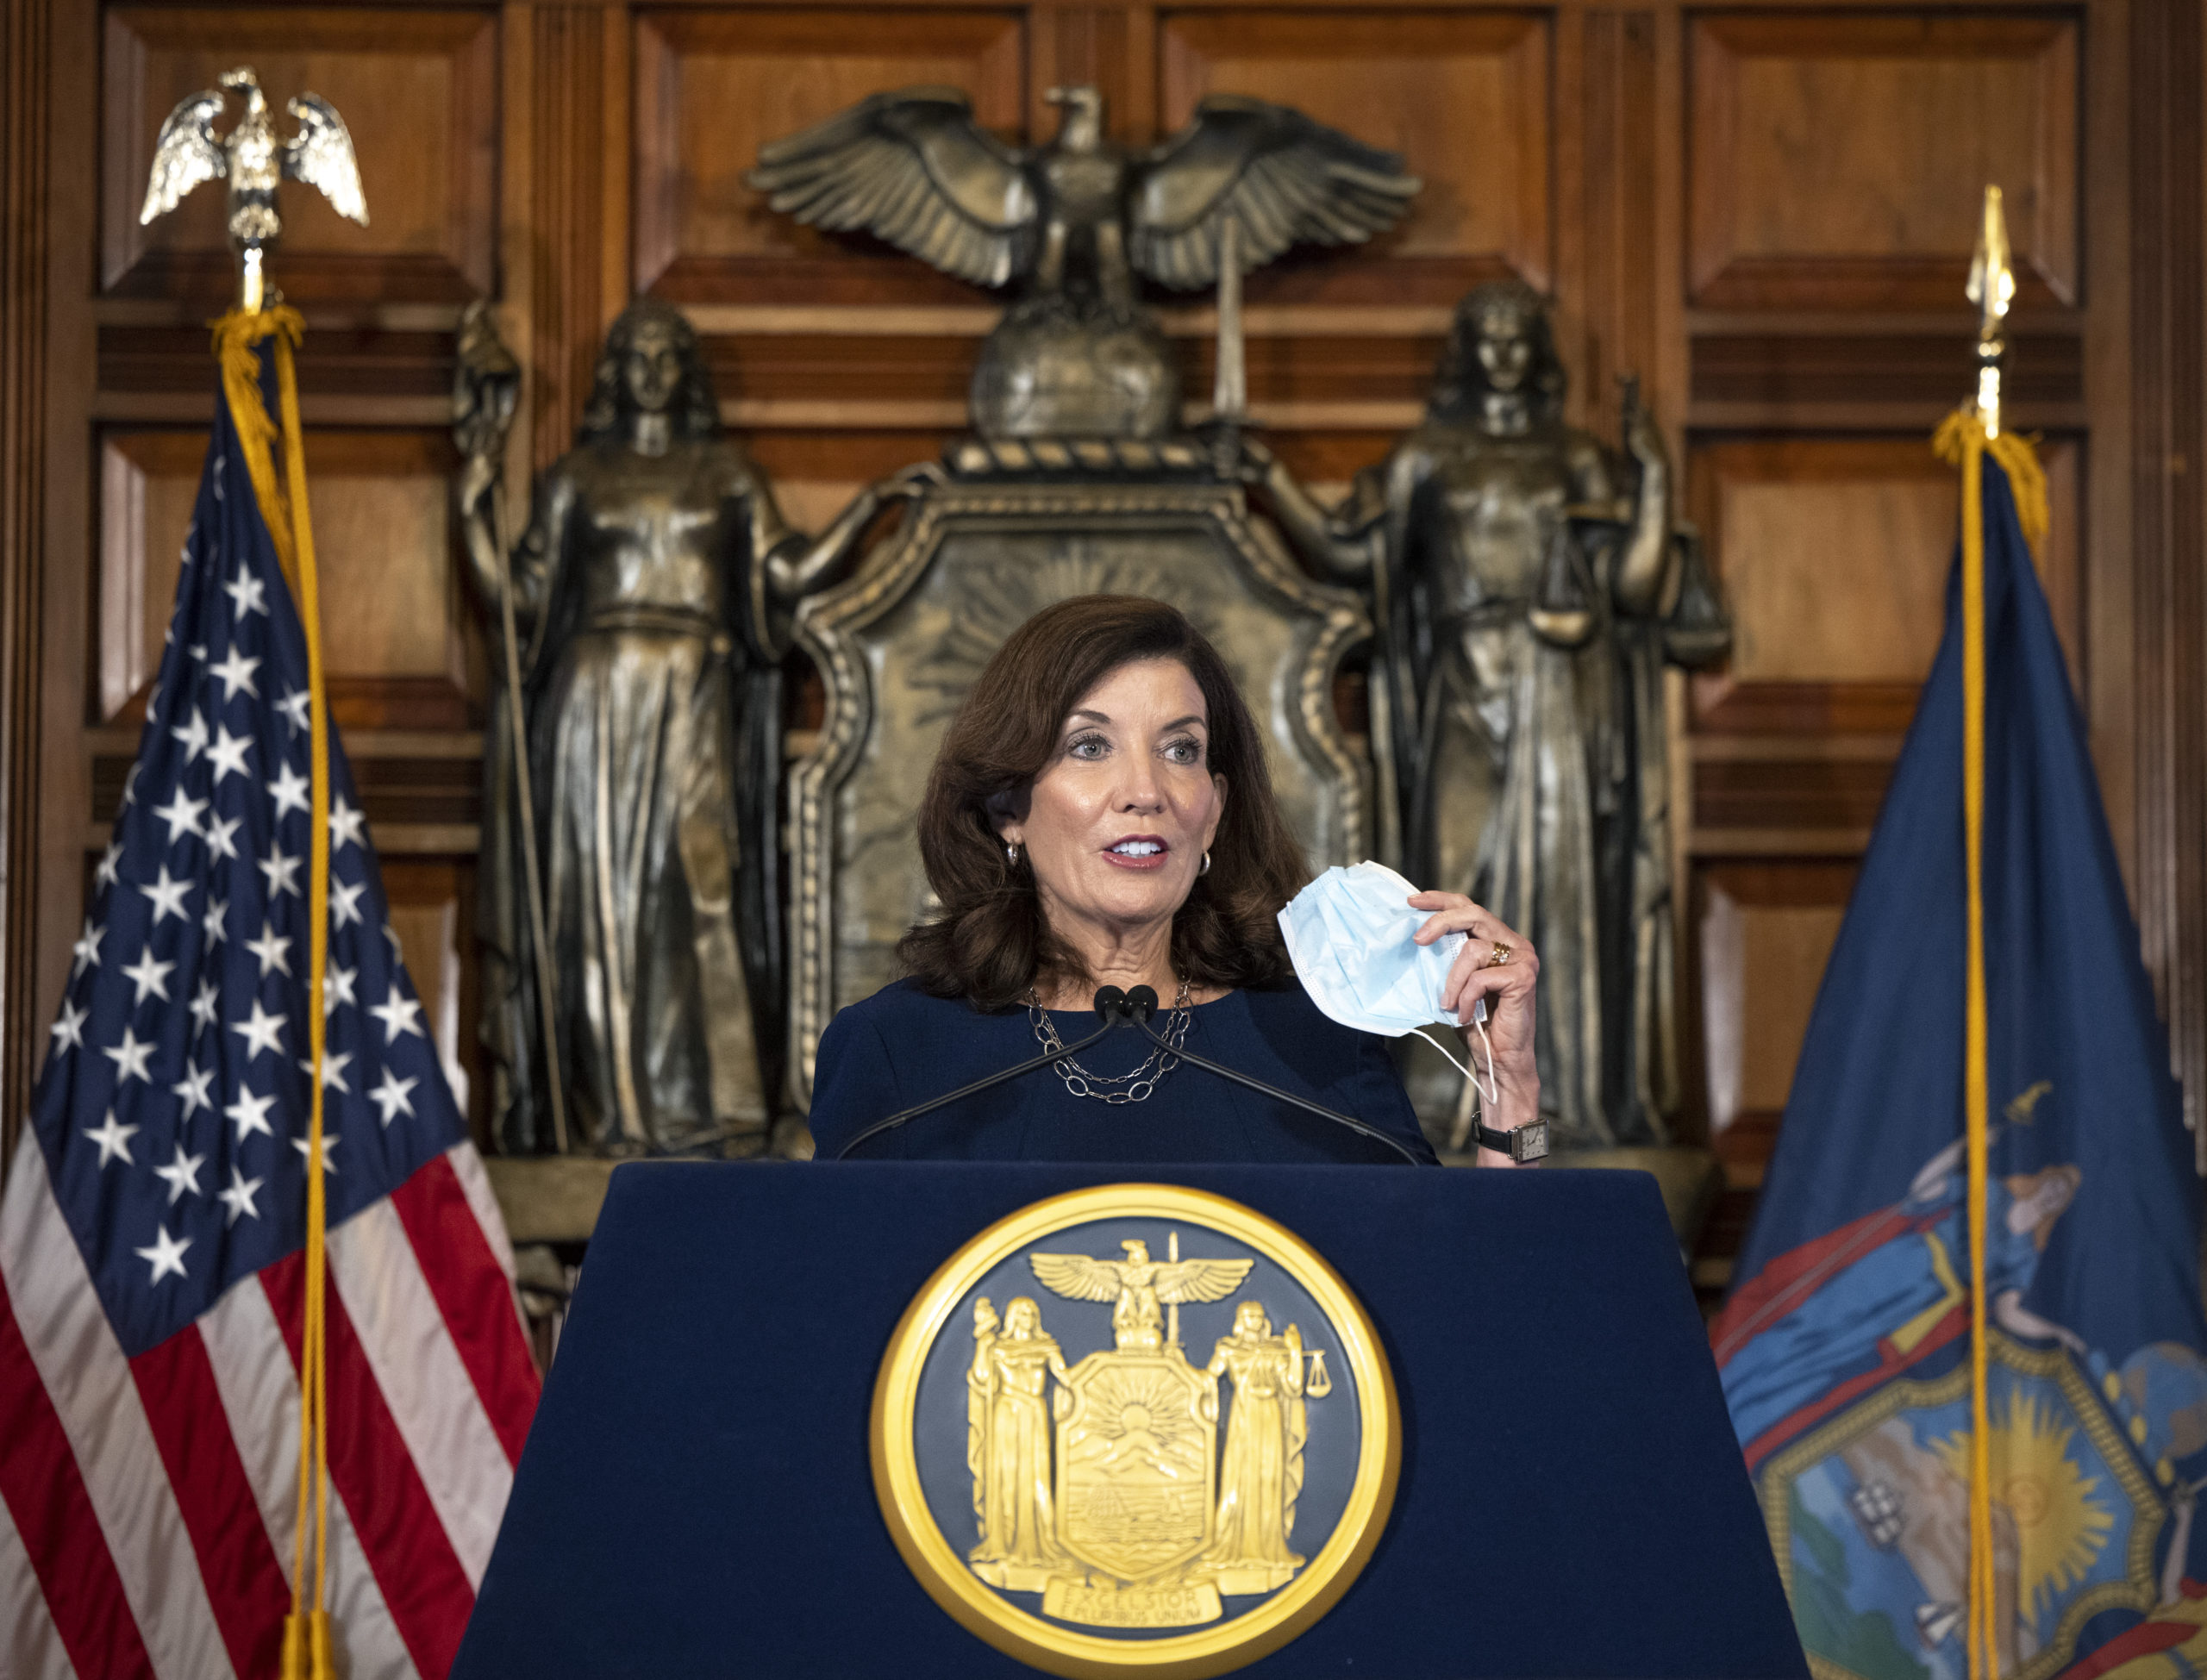 New York Governor Kathy Hochul delivers a COVID-19 update in the Red Room at the State Capitol September 15. MIKE GROLL/OFFICE OF GOVERNOR KATHY HOCHUL